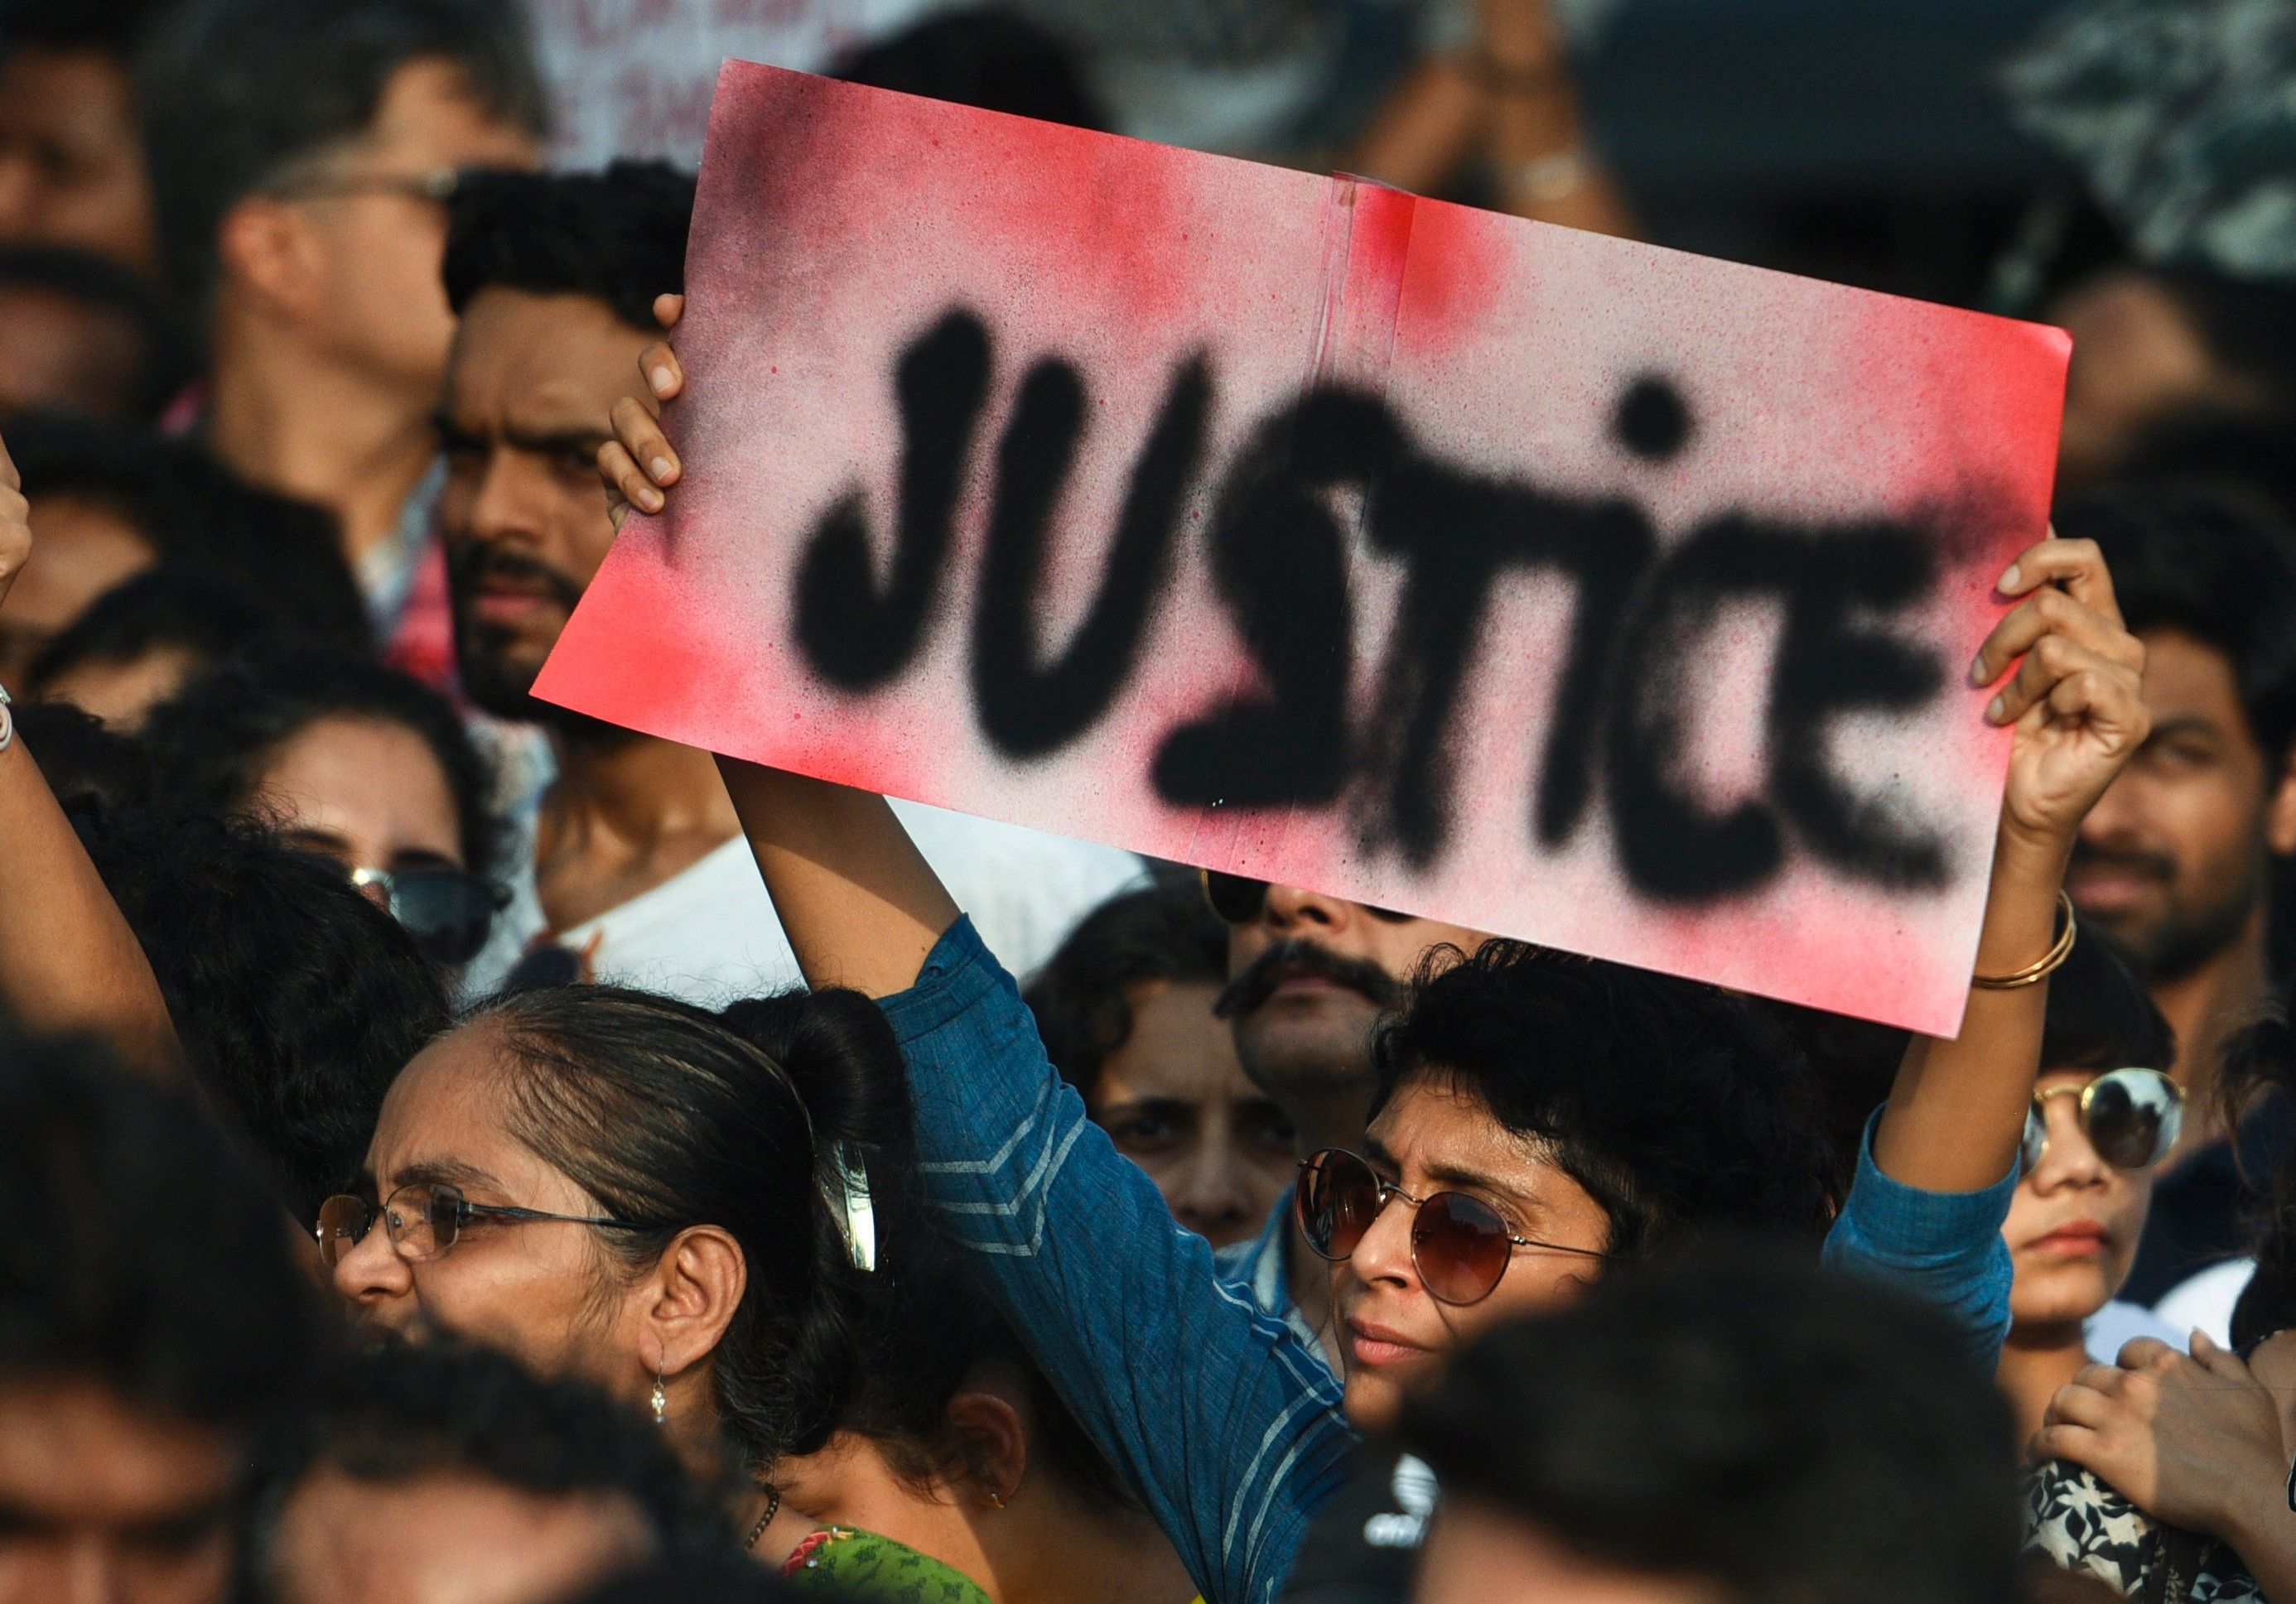 MUMBAI, INDIA - APRIL 15: People hold placards as they participate in a protest against the Kathua, Unnao rape cases and other incidents of rape in the country, at Dadar, on April 15, 2018 in Mumbai, India. (Photo by Satish Bate/Hindustan Times via Getty Images)